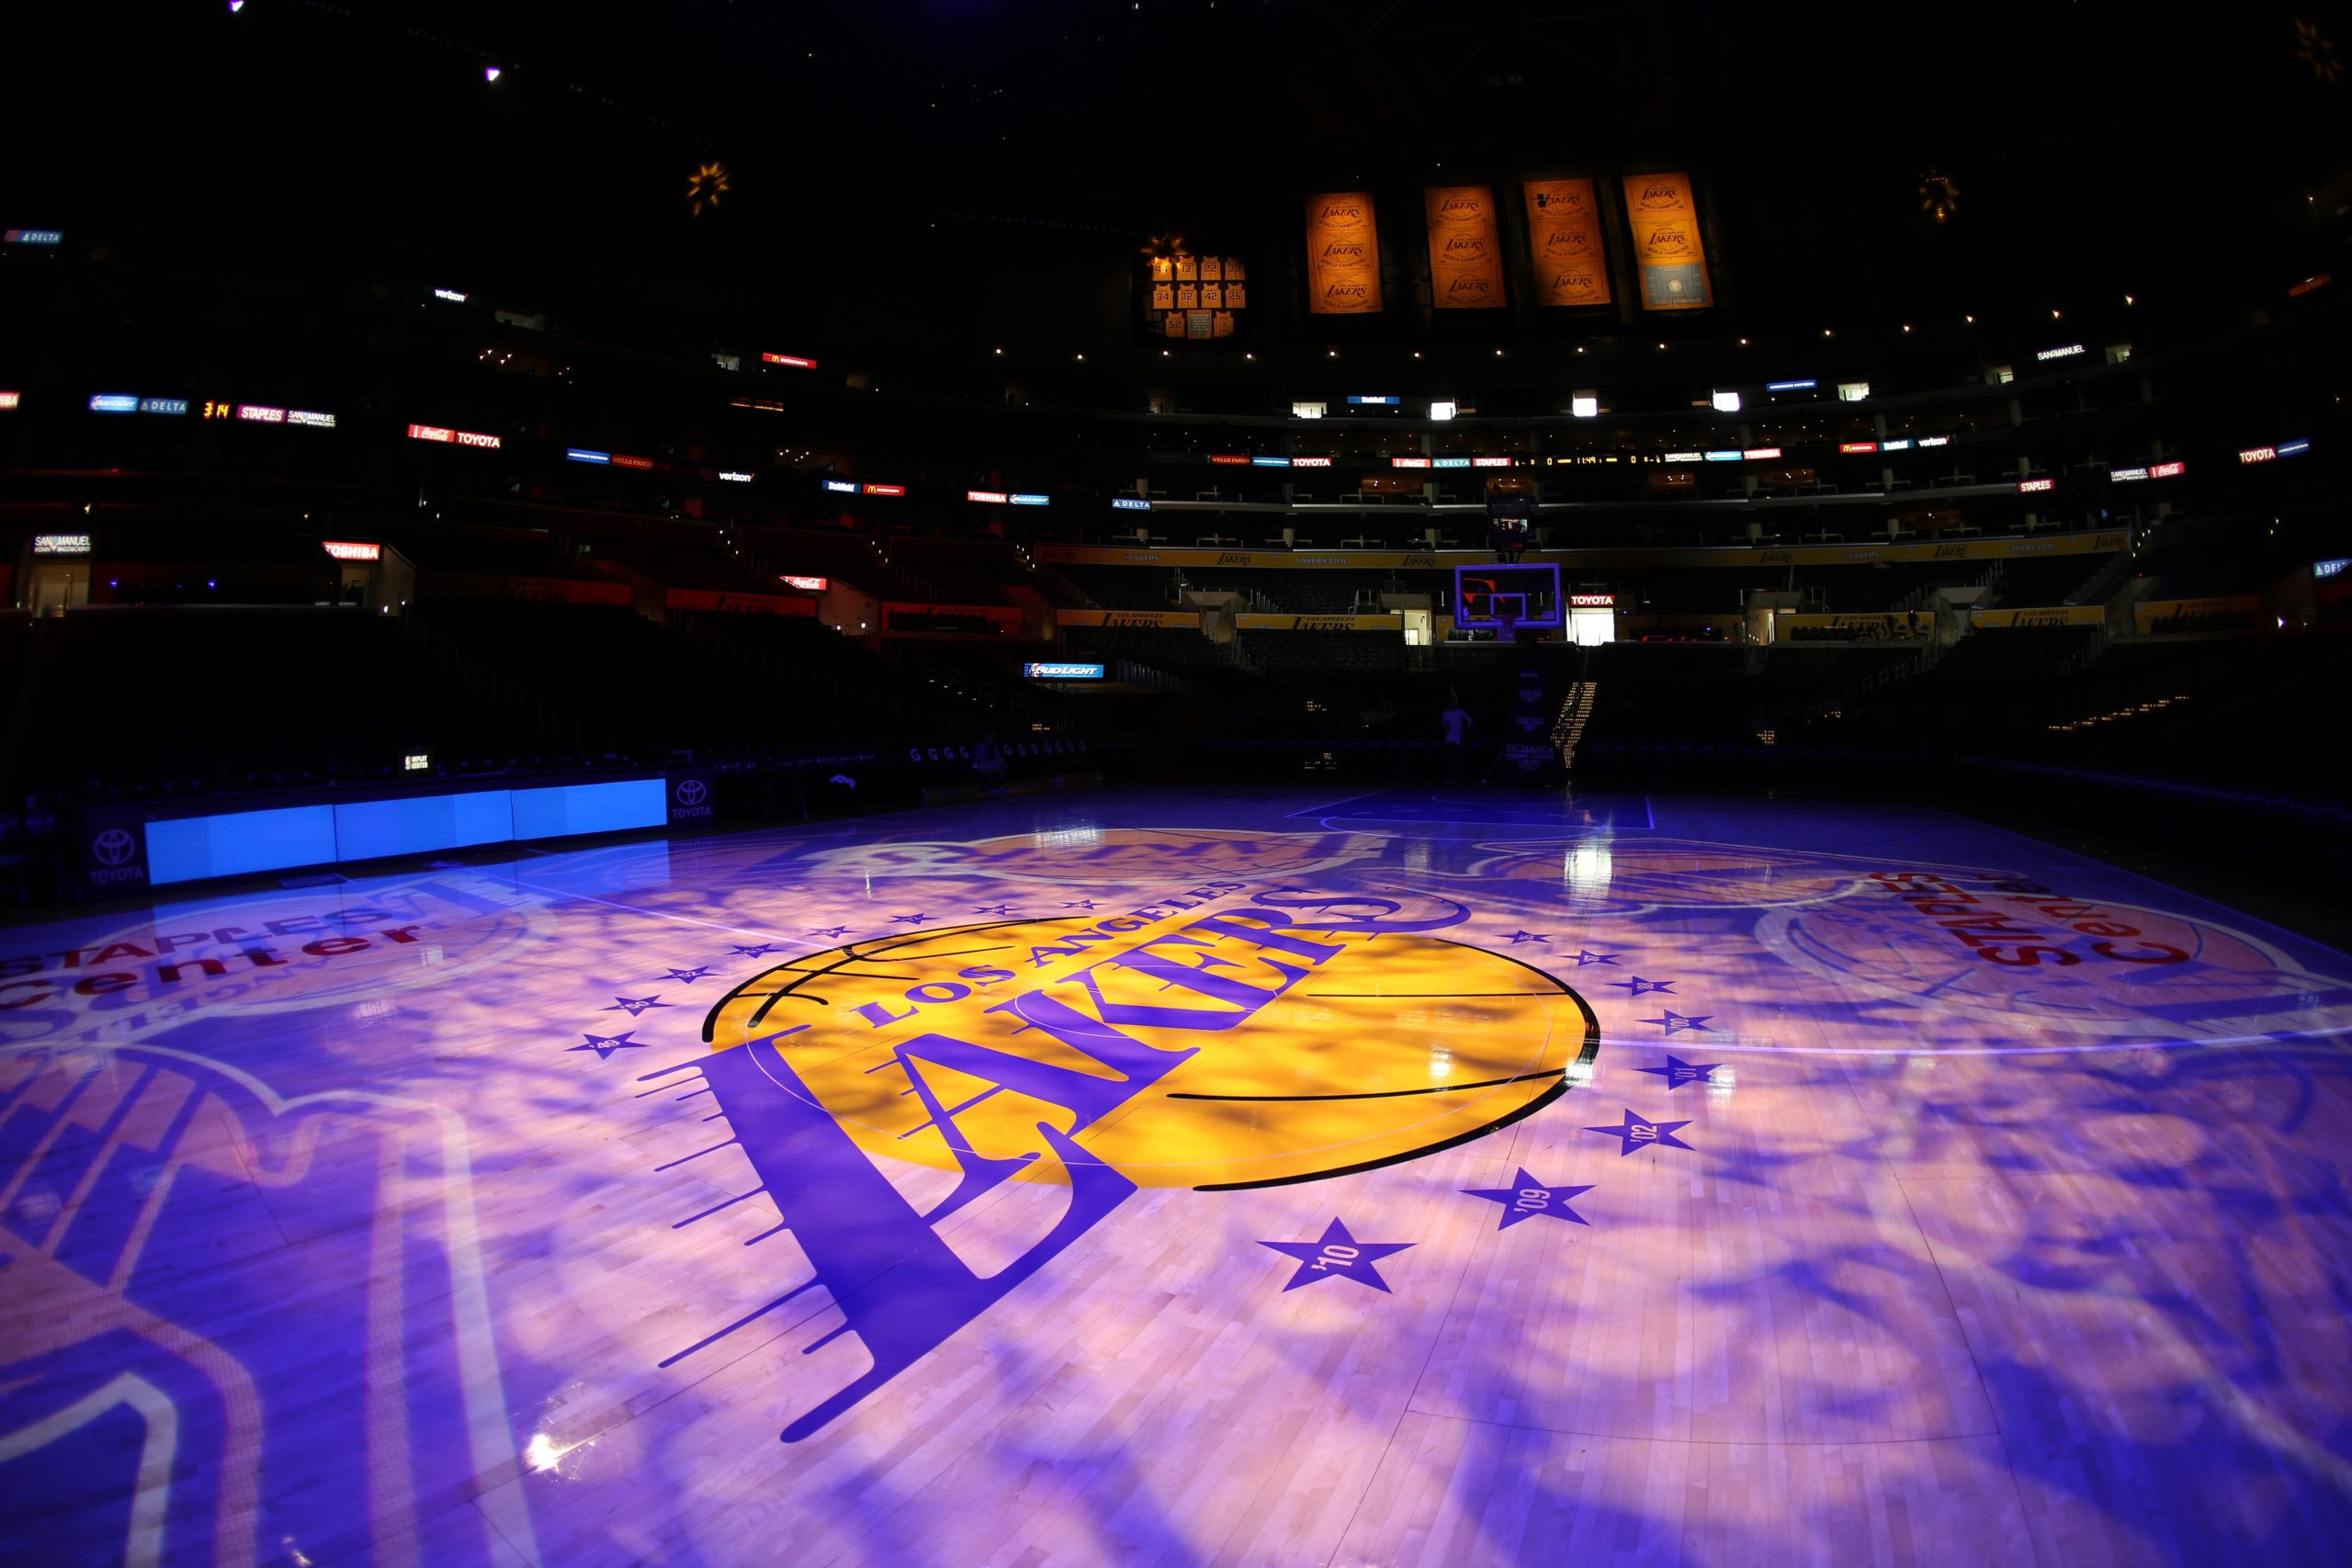 Los Angeles Lakers Basketball Court